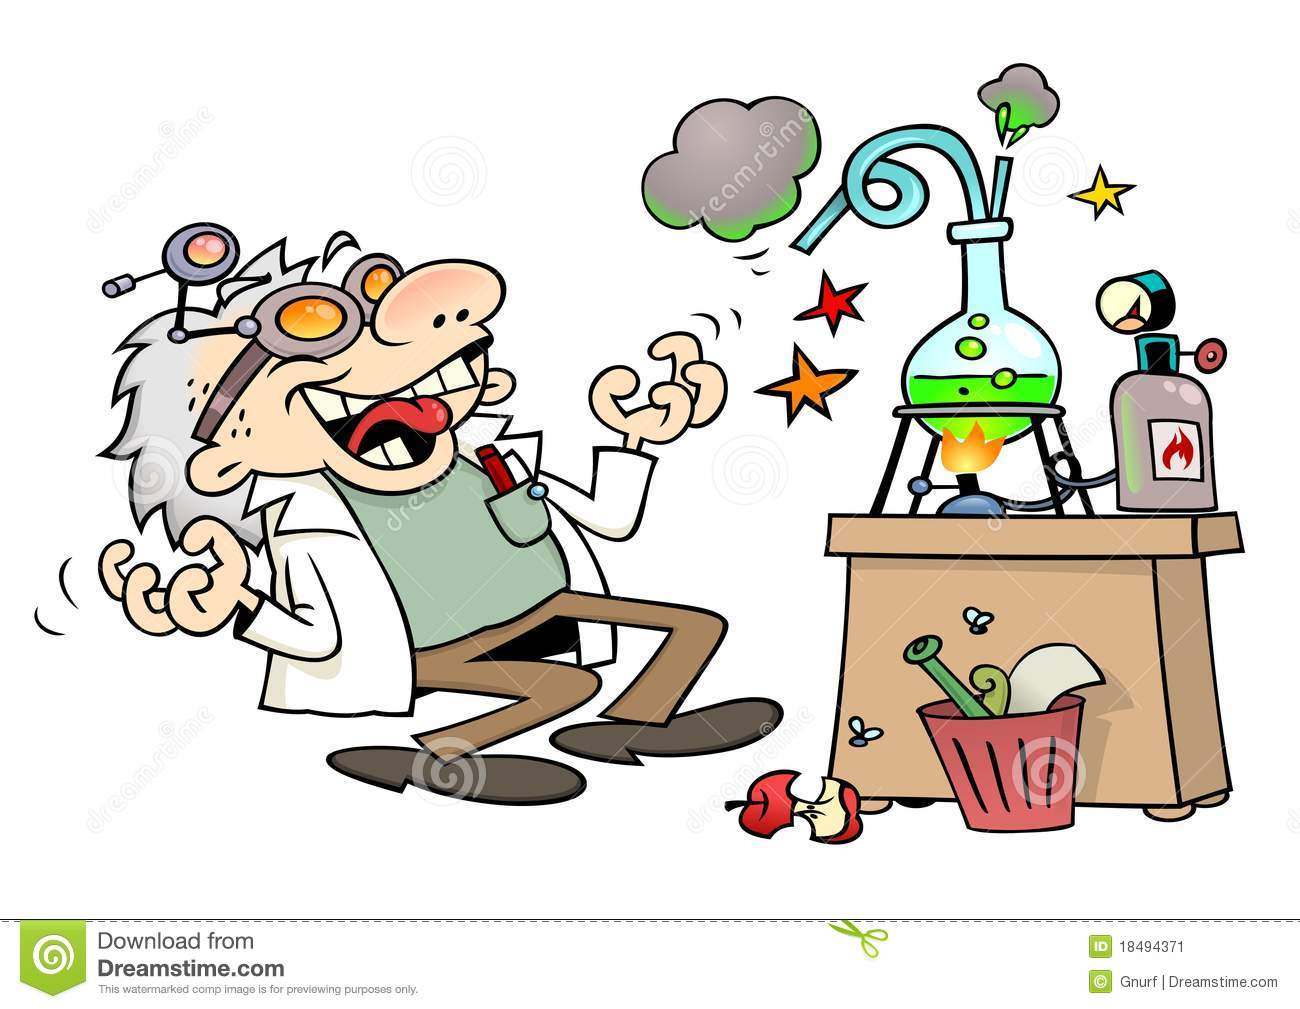 Mad scientist laughing insanely by his laboratory desk.